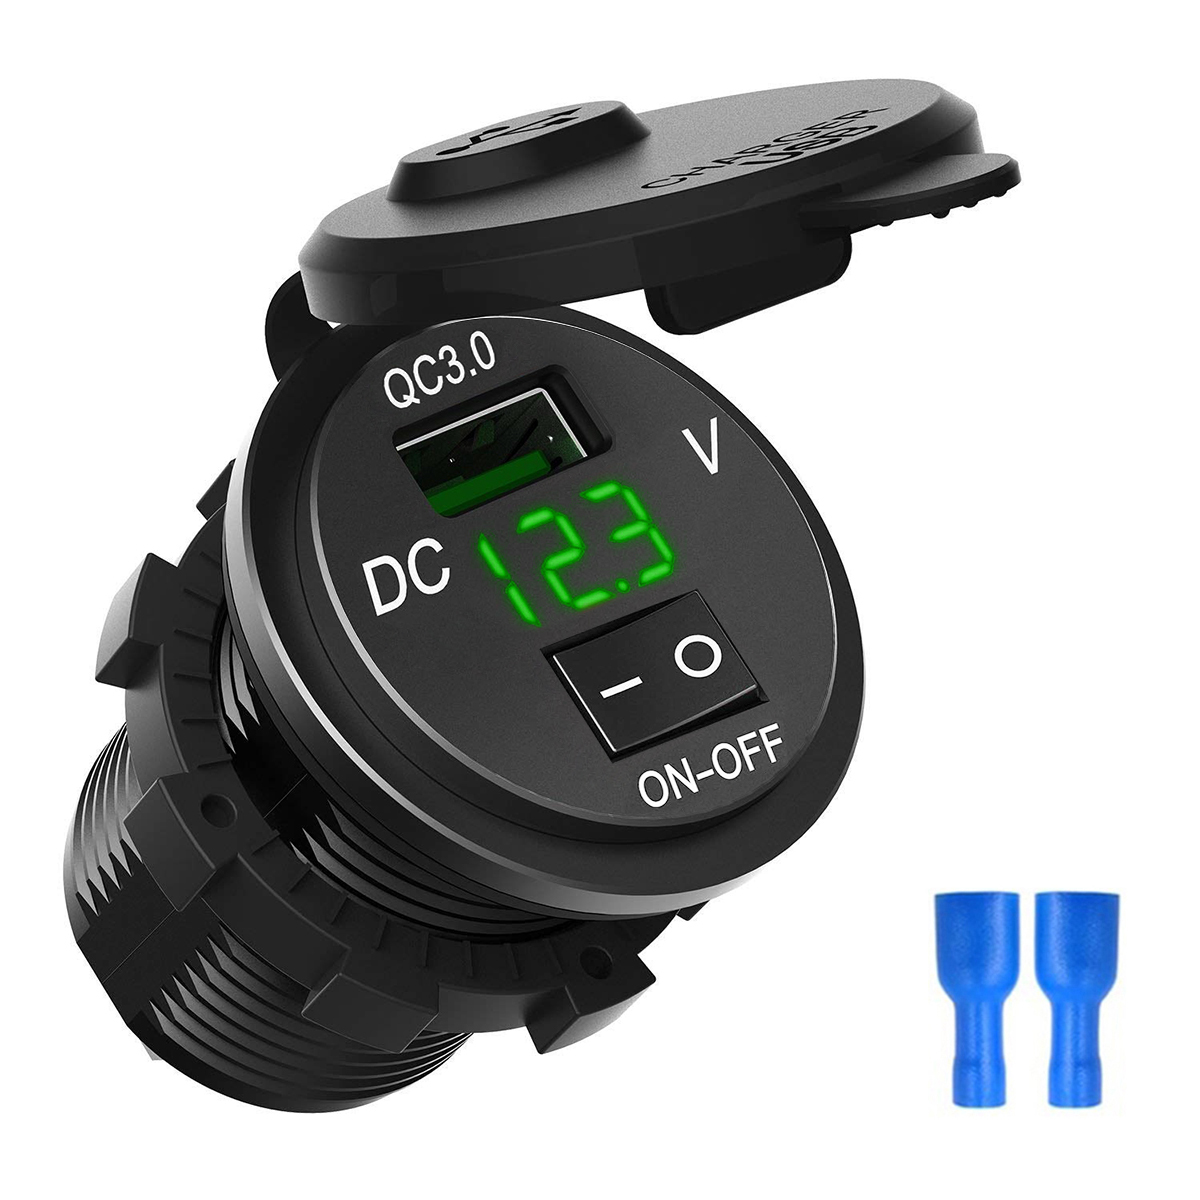 QC 3.0 USB Car Charger Socket Digital Display Voltmeter USB Charger Socket With ON-OFF Switch For Car RV ATV Motorbike Boat